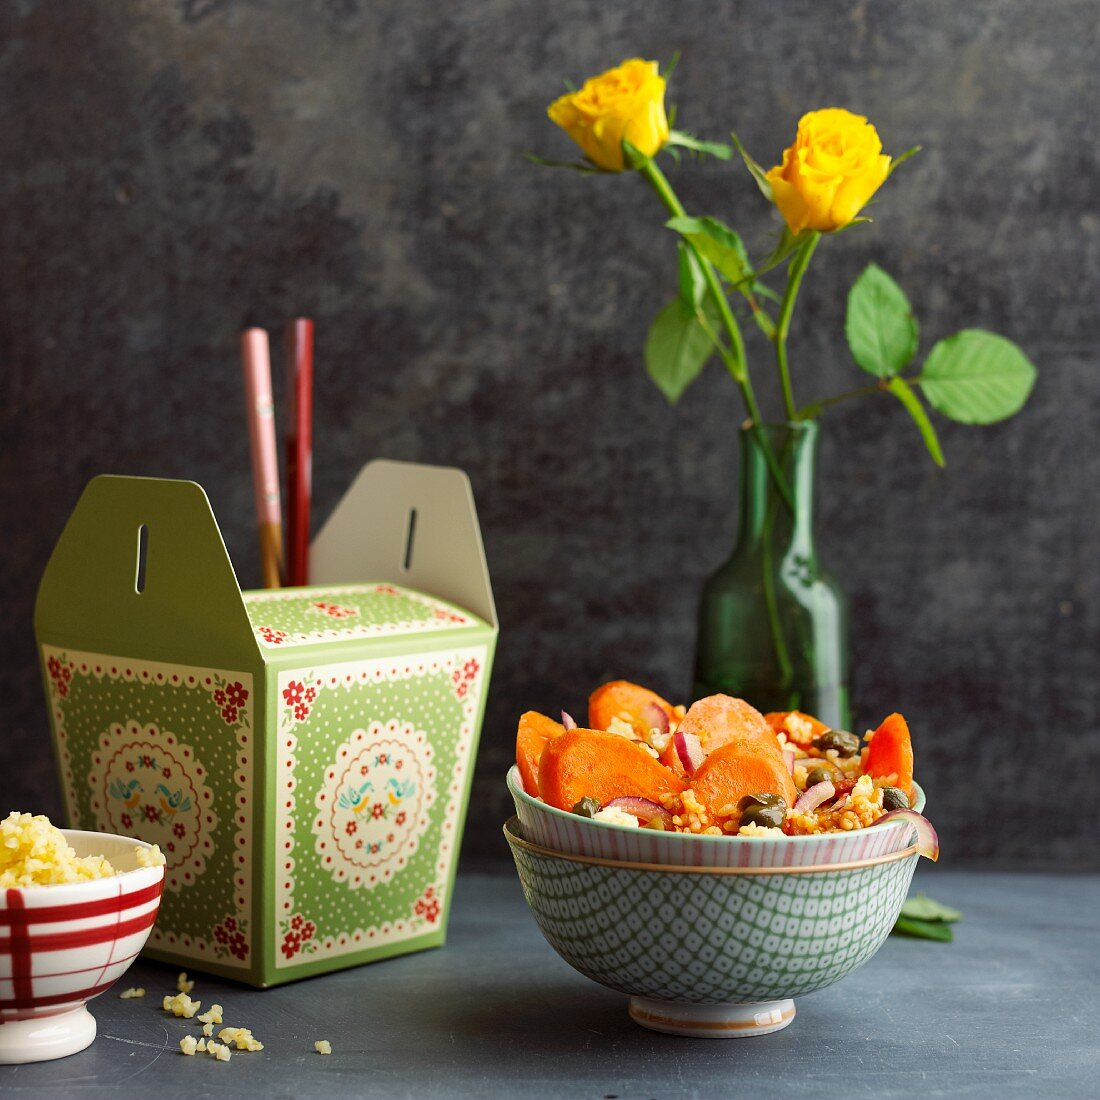 Thai-style bulgur with carrots and capers